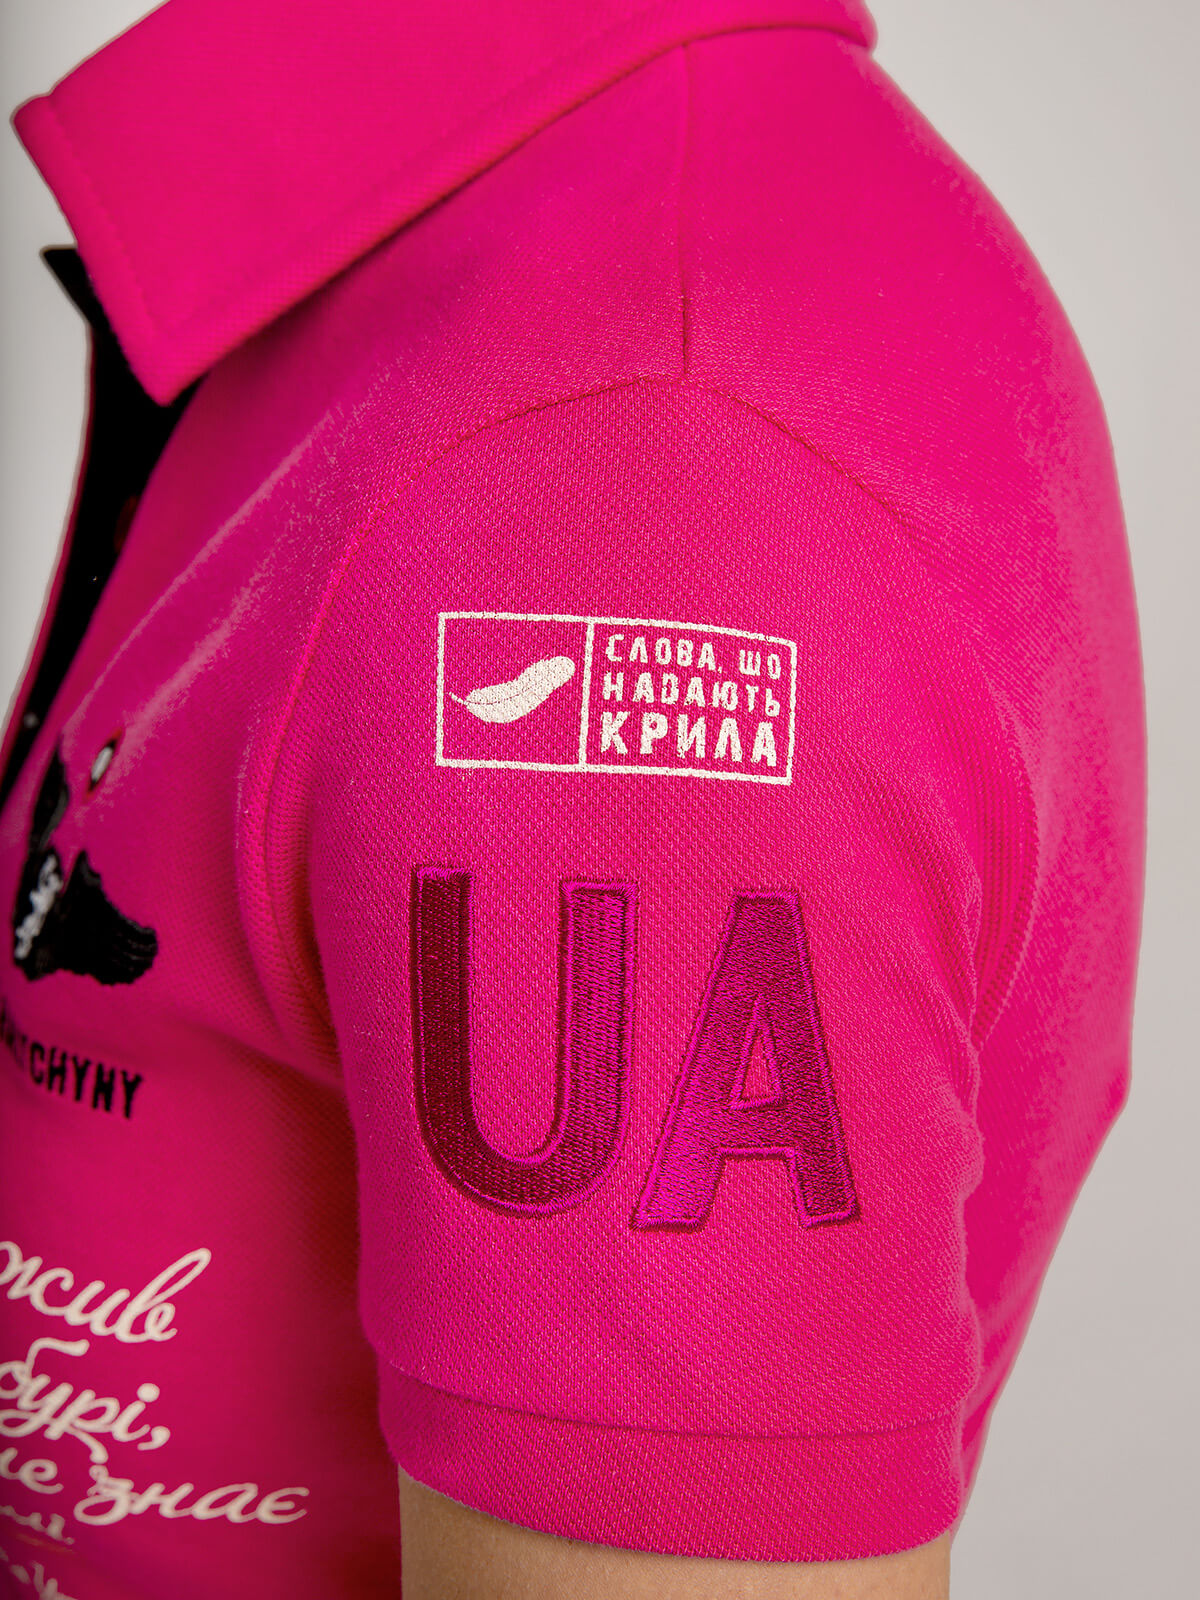 Women's Polo Shirt Lesia Ukrainka. Color pink.  Height of the model: 175 cm  The color shades on your screen may differ from the original color.